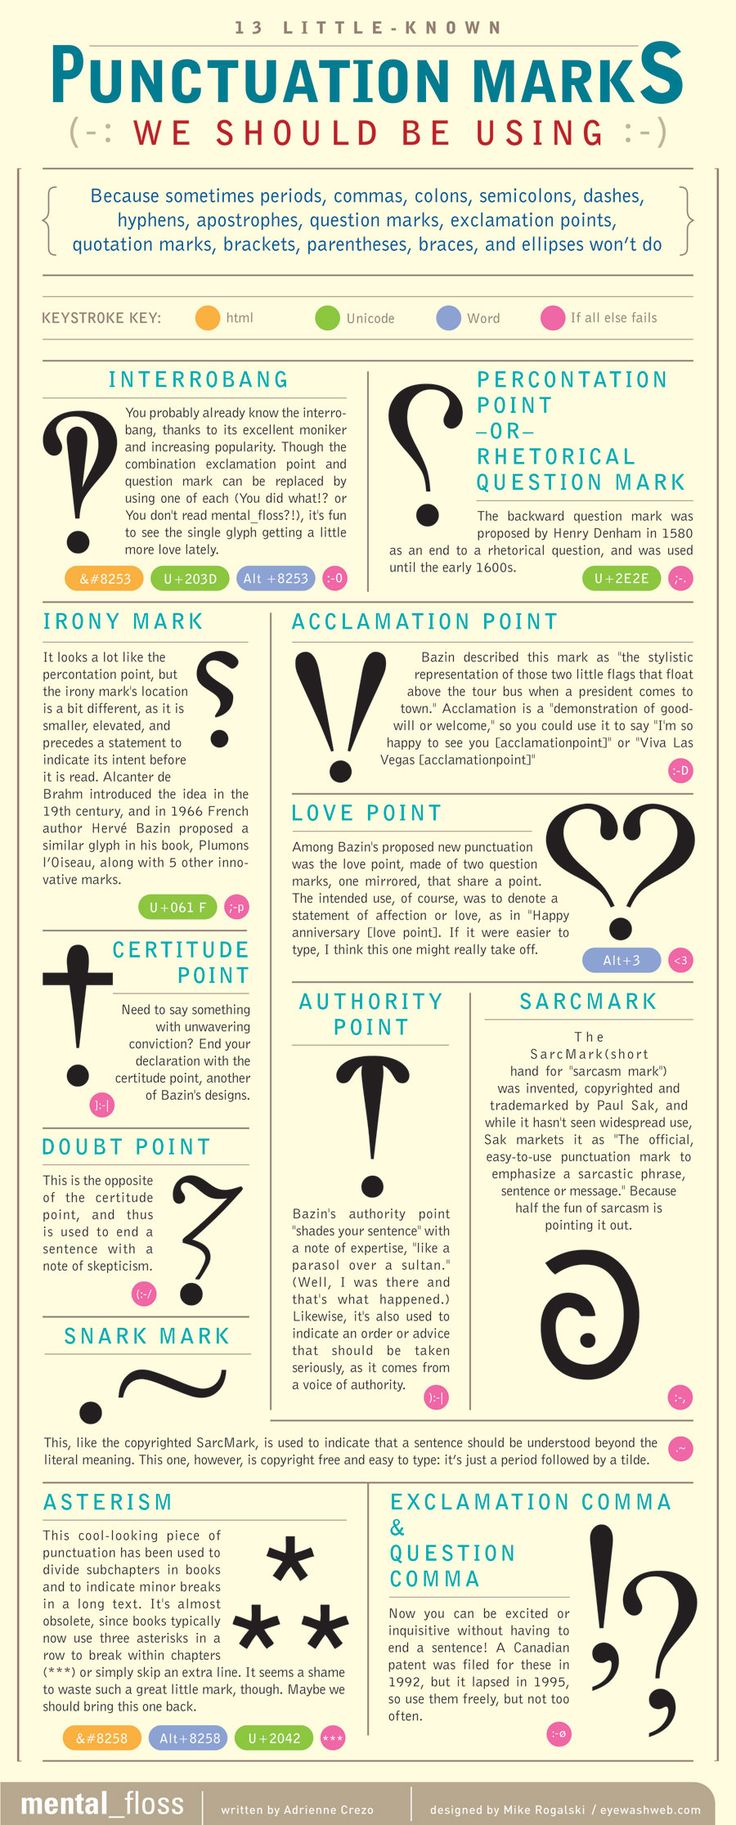 What punctuation symbol do you put before you write a title of a book?